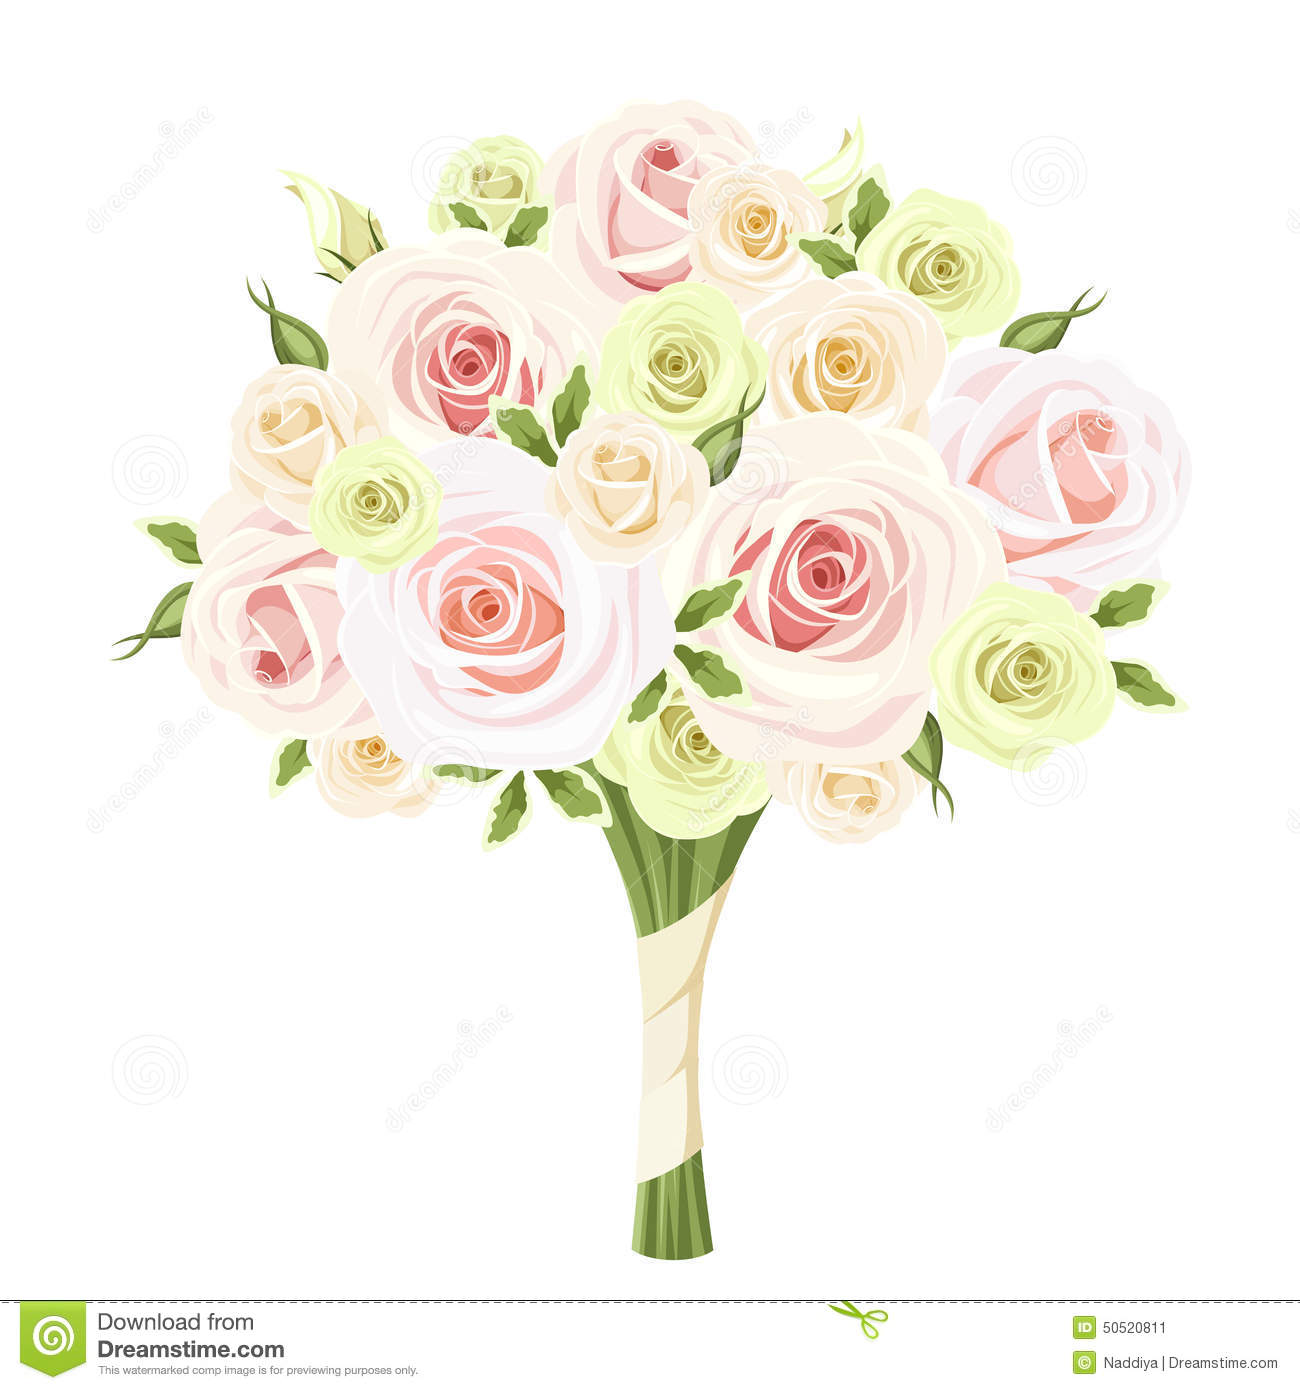 Wedding Flowers Vector Free Download : Wedding bouquet of pink white and green roses vector